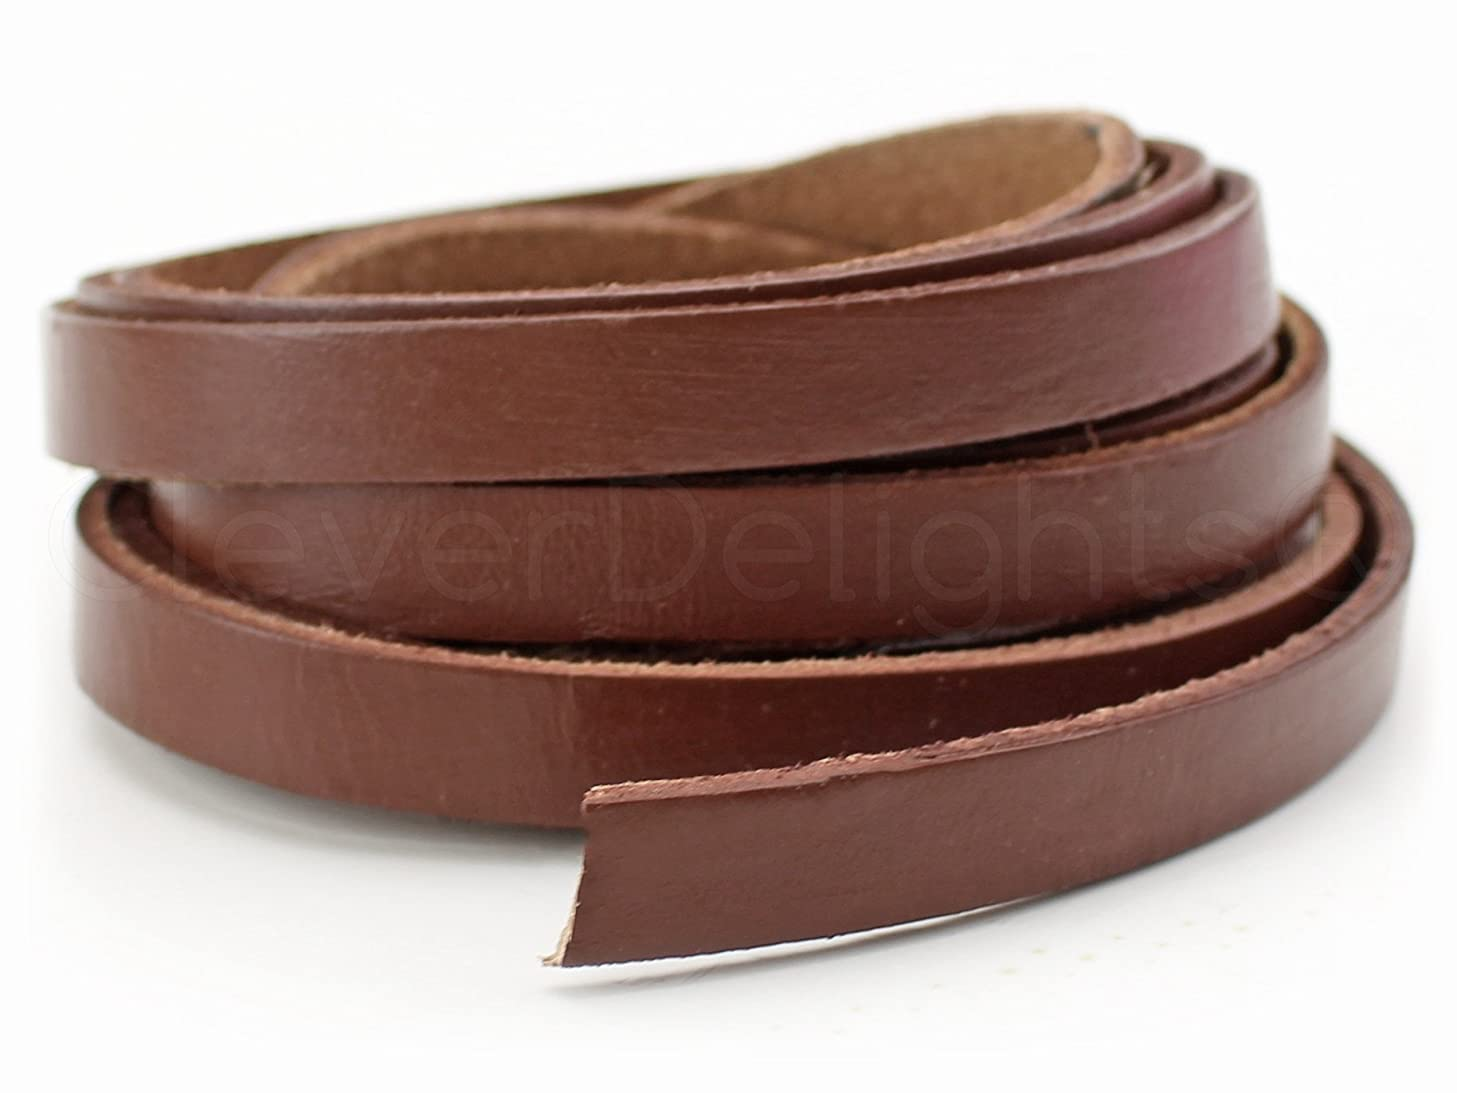 CleverDelights Genuine Leather Strap - 3/8